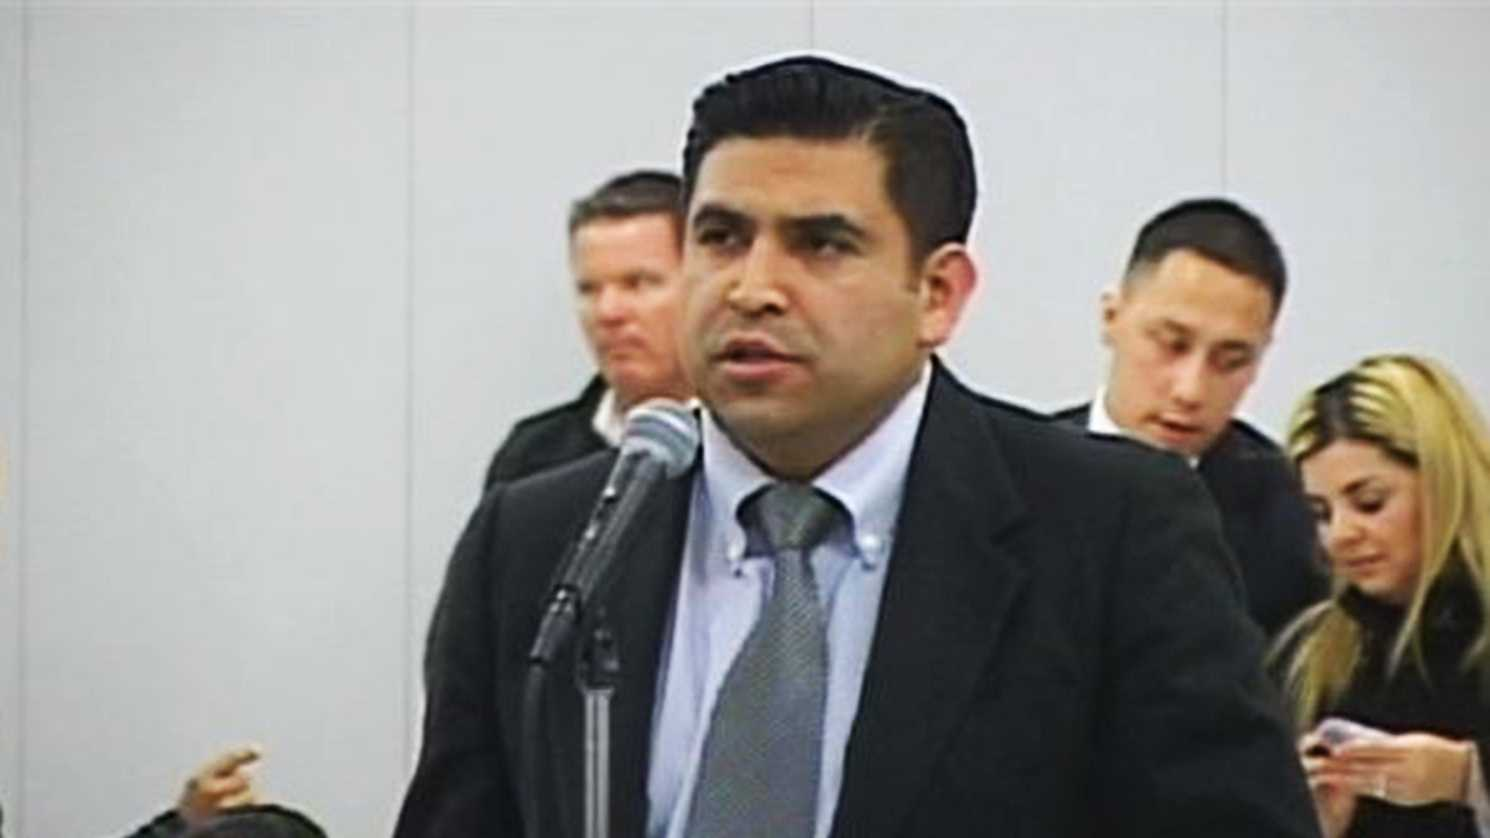 Salinas City Councilman Jose Castaneda